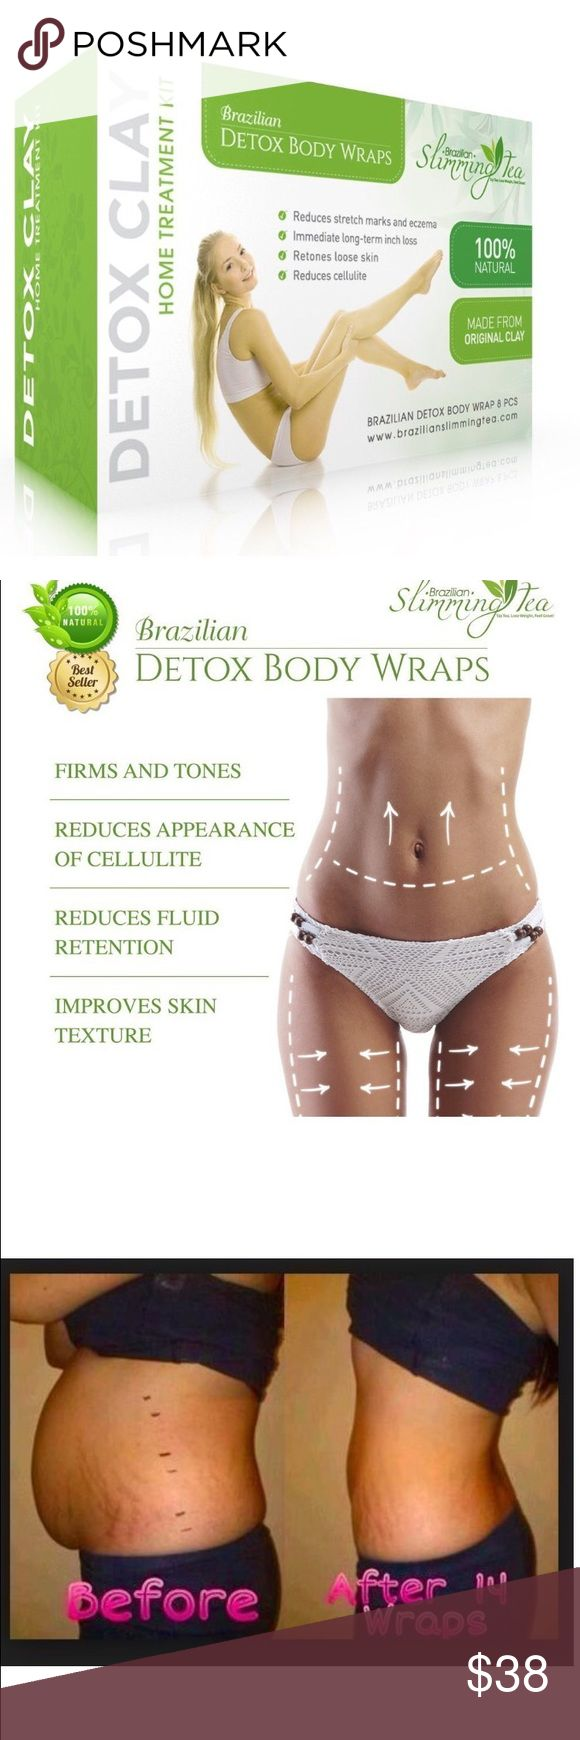 Brazilian volcanic clay Detox weight loss wrap GET RID OF BELLY FAT FAST THE NATURAL WAY  PROMOTE FIRMER, SMOOTHER SKIN-Detox Clay body wrap boosts skin firmness to tighten loose skin, diminish cellulite and make stretch marks less apparent; Also acts as a slimming body wrap to battle bloating COMPLETE BODY WRAP TREATMENT KIT - Pack includes EIGHT body wraps for stomach, arms and thighs! You'll notice results the first time that you use our natural body wraps RESULTS GUARANTEED-100%…